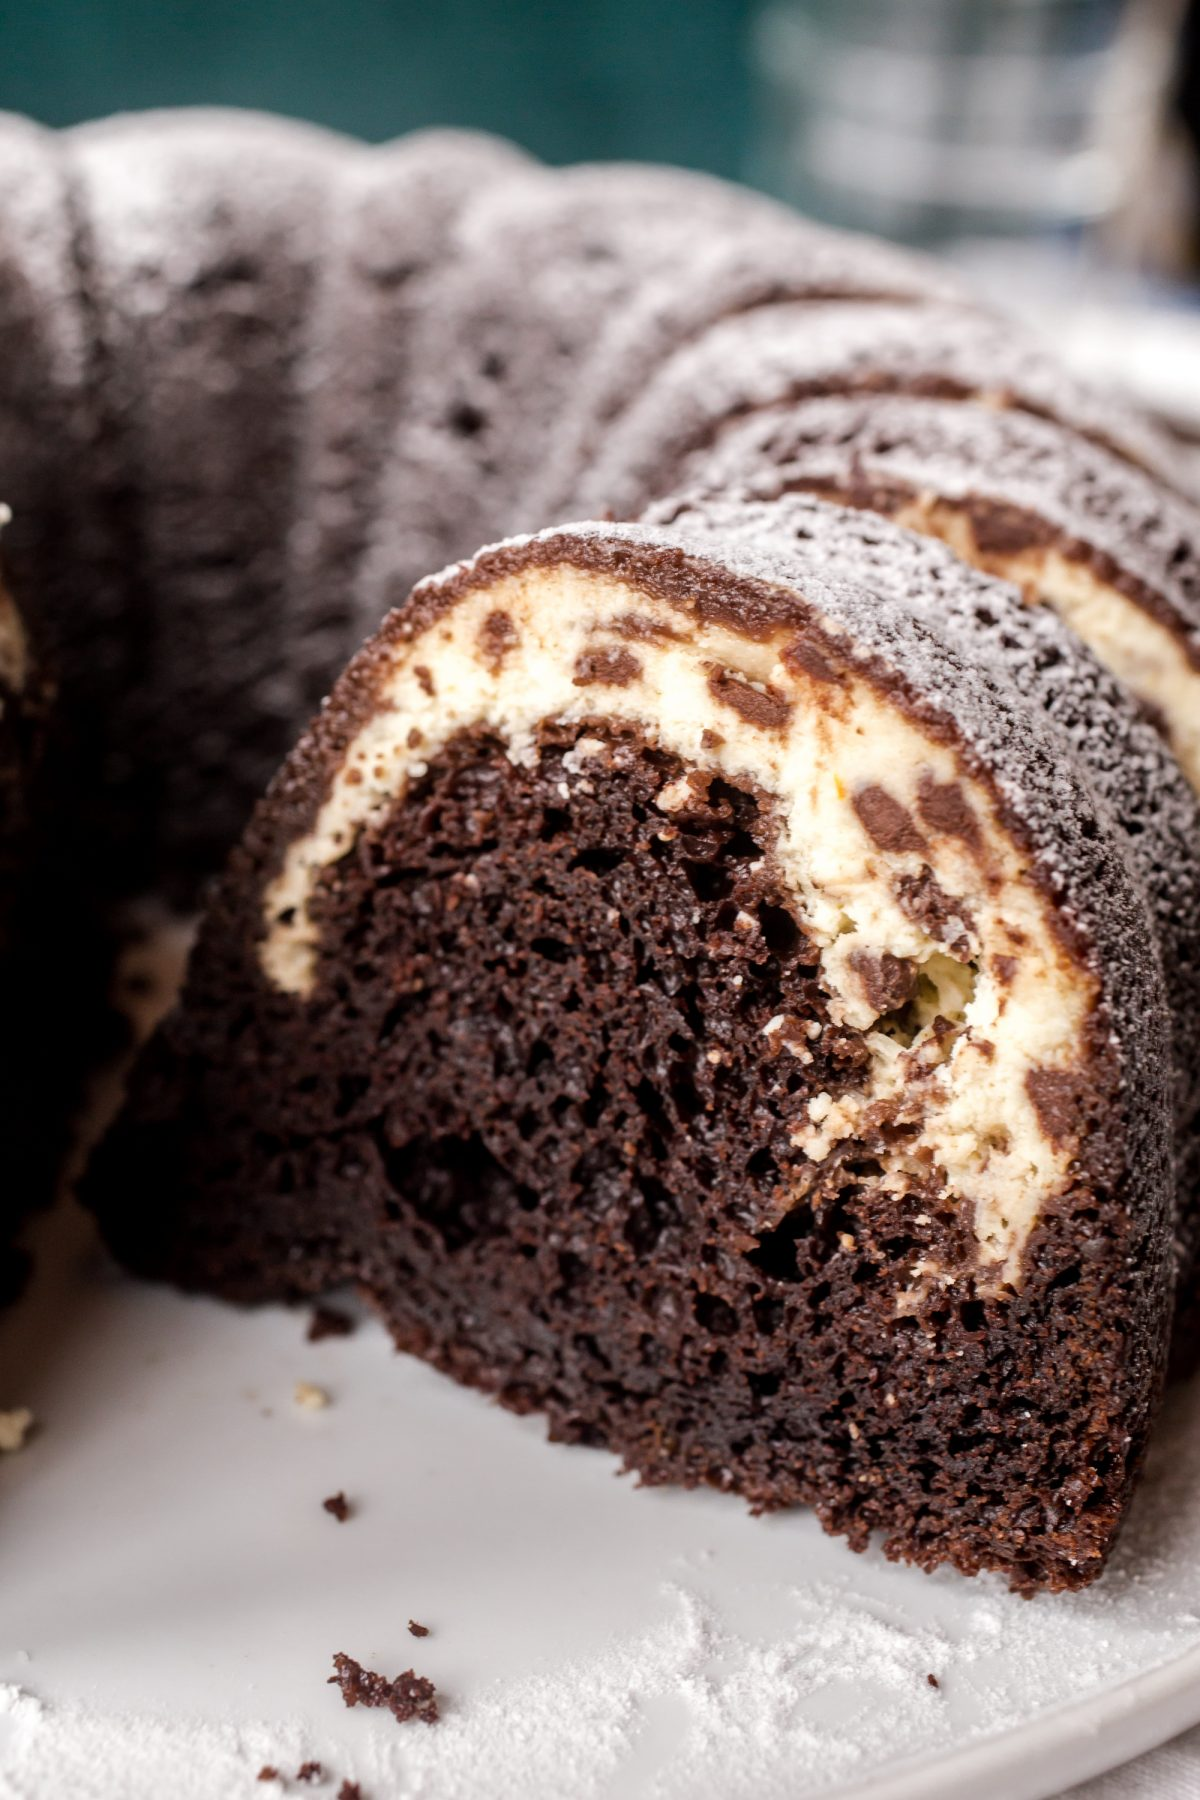 A cross section of a chocolate bundt cake filled with cannoli cream